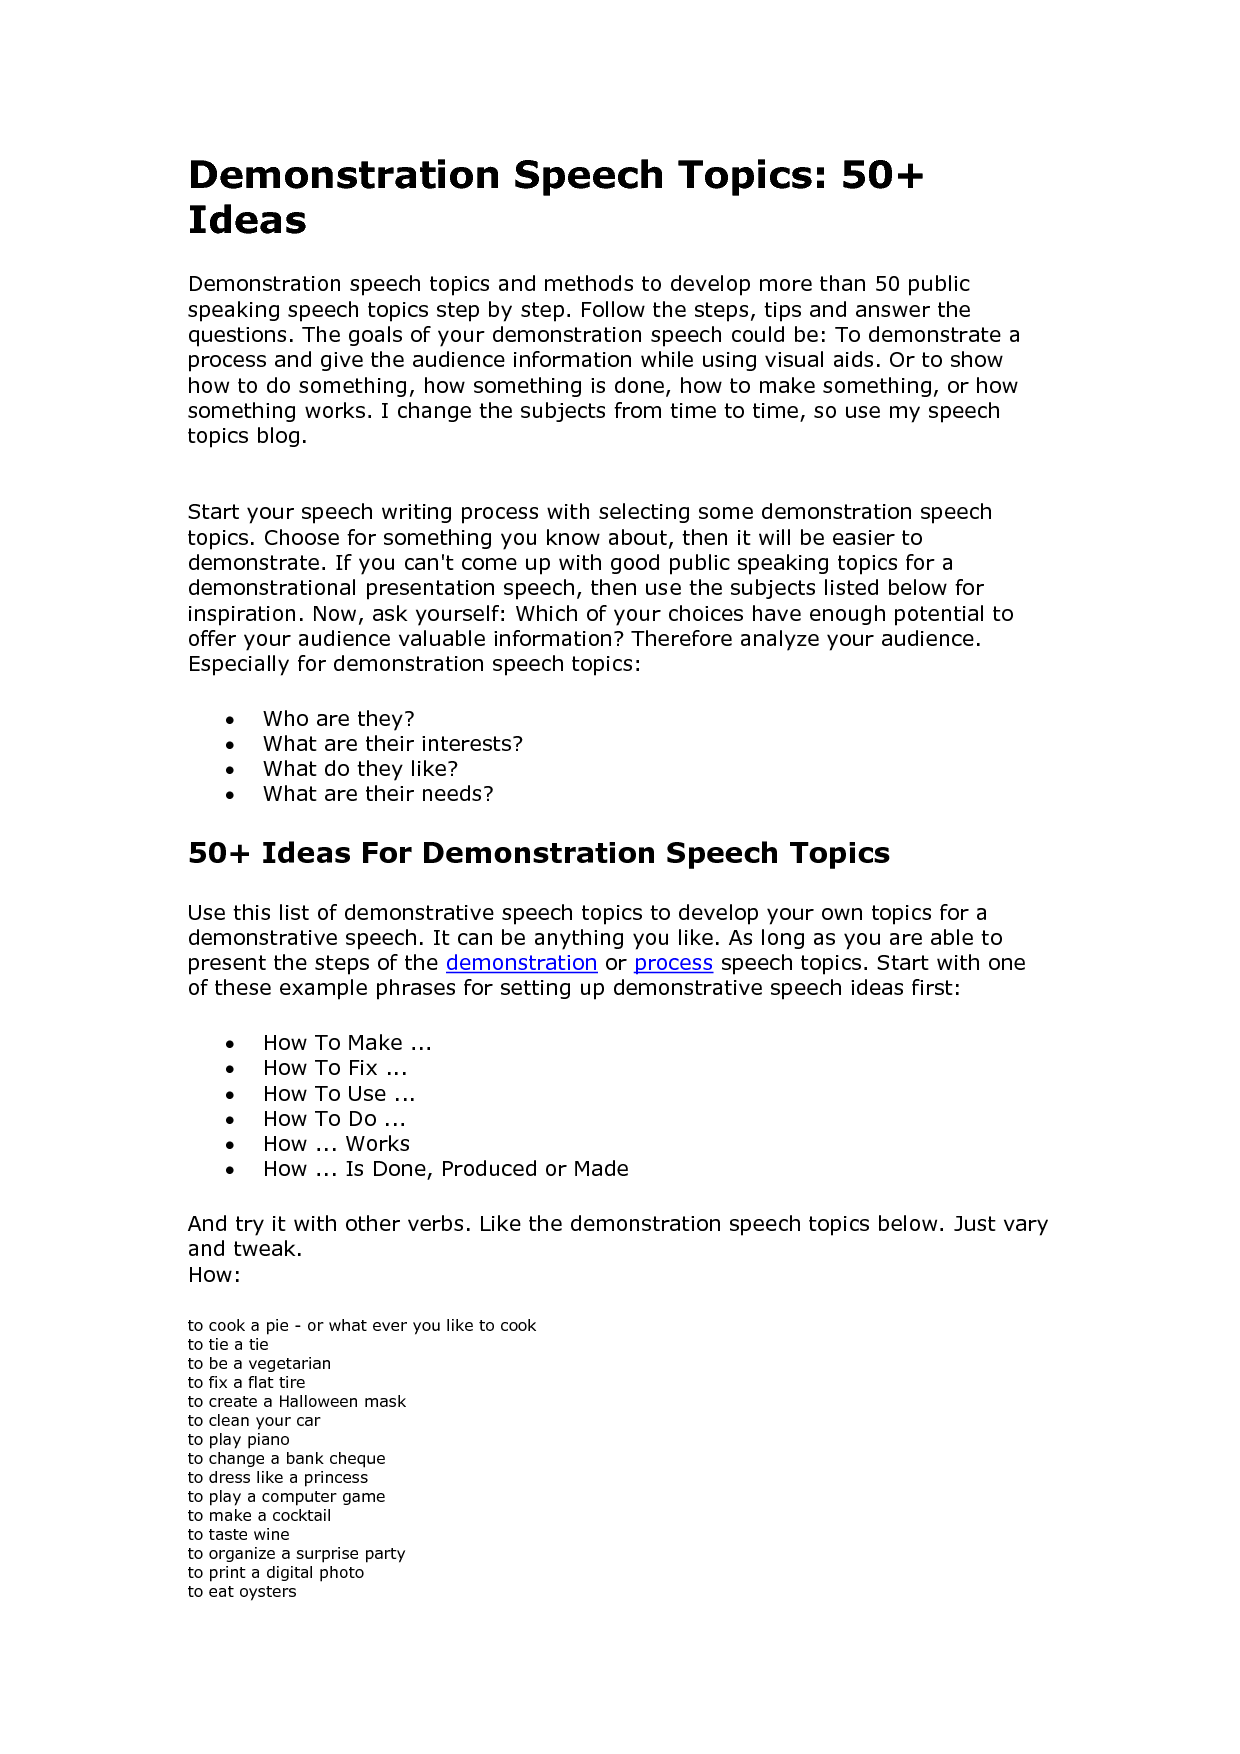 Outline Demonstration Speech Topics